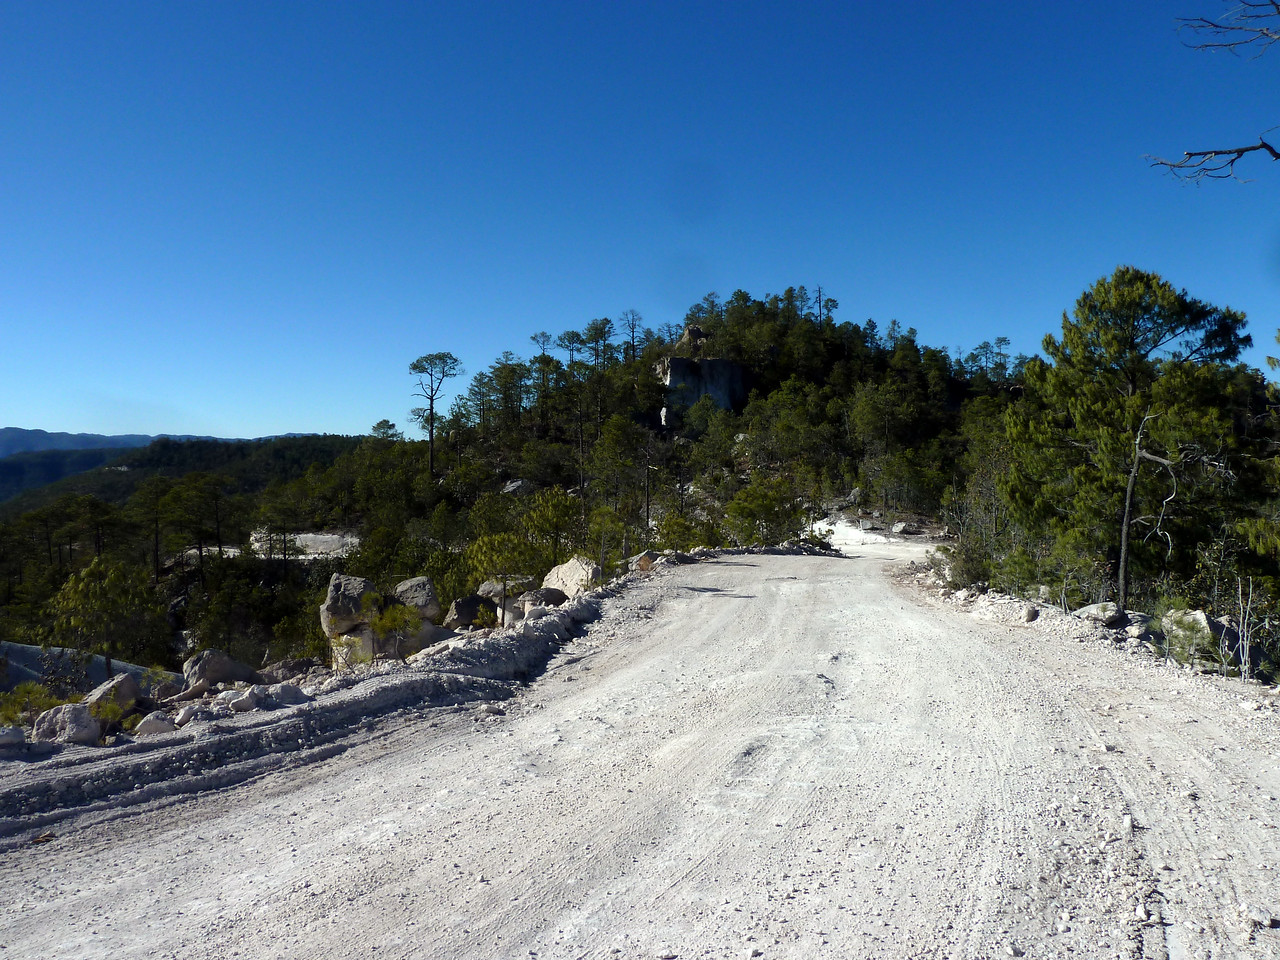 Looking down the dirt road. Cool rock in the center of the picture.